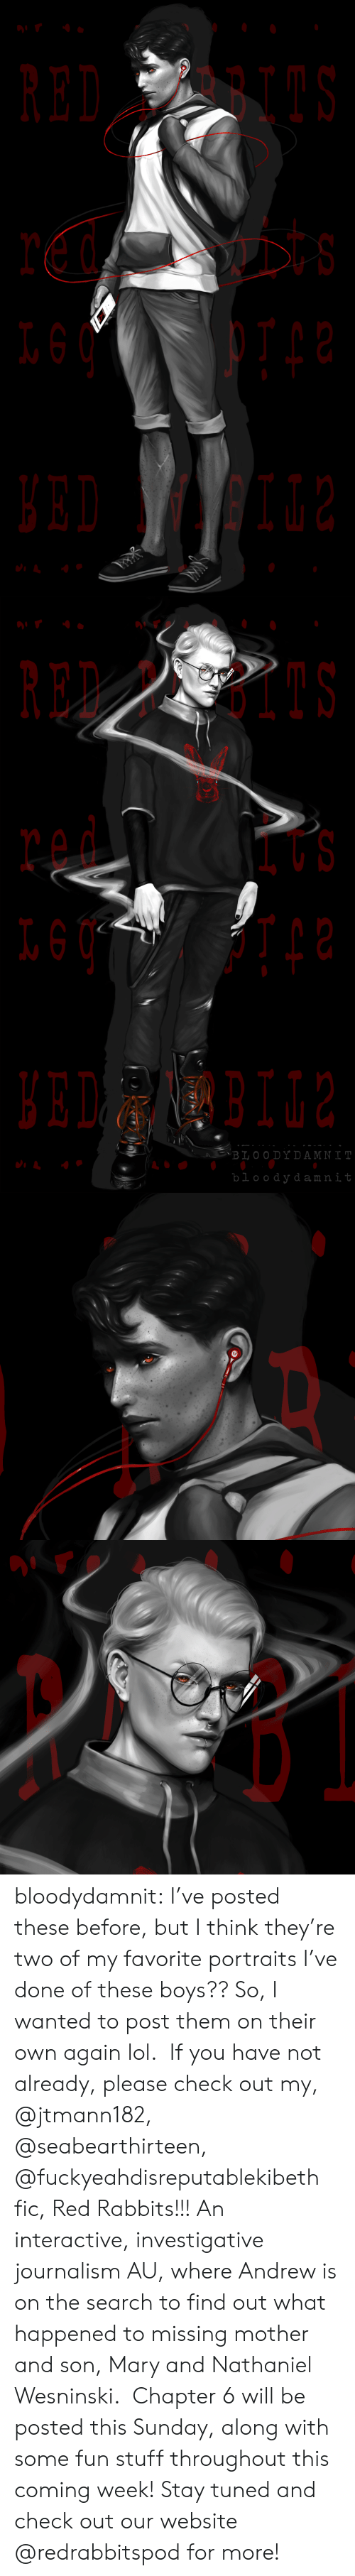 rabbits: RED BI  t s   RED PBIIS  BLOO DYDAMNI  bloody damnit bloodydamnit: I've posted these before, but I think they're two of my favorite portraits I've done of these boys?? So, I wanted to post them on their own again lol. If you have not already, please check out my, @jtmann182, @seabearthirteen, @fuckyeahdisreputablekibeth fic, Red Rabbits!!! An interactive, investigative journalism AU, where Andrew is on the search to find out what happened to missing mother and son, Mary and Nathaniel Wesninski. Chapter 6 will be posted this Sunday, along with some fun stuff throughout this coming week! Stay tuned and check out our website @redrabbitspod for more!